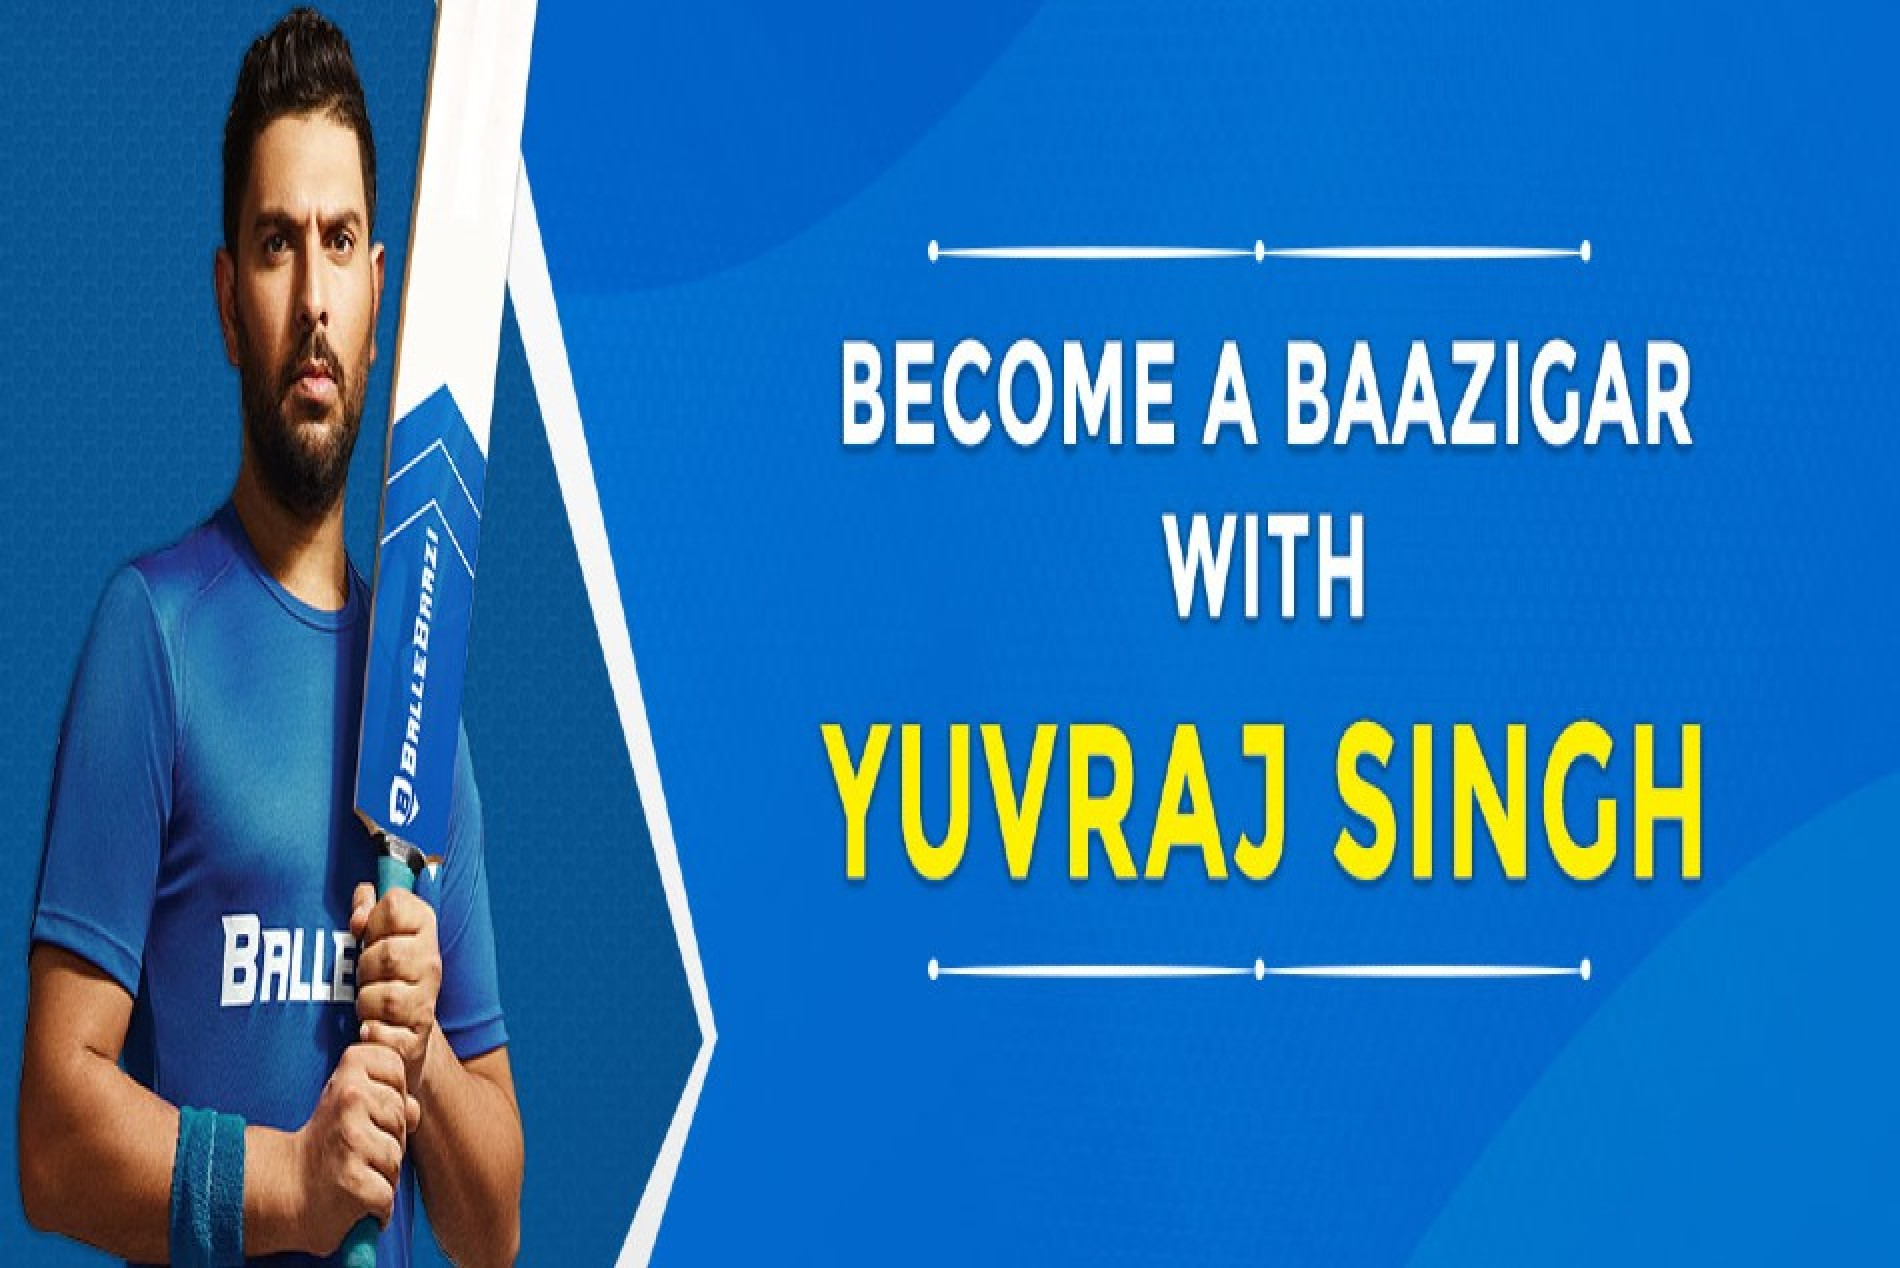 Indian Cricketers supports Yuvraj Singh as he take the #BallaHallaChallange.